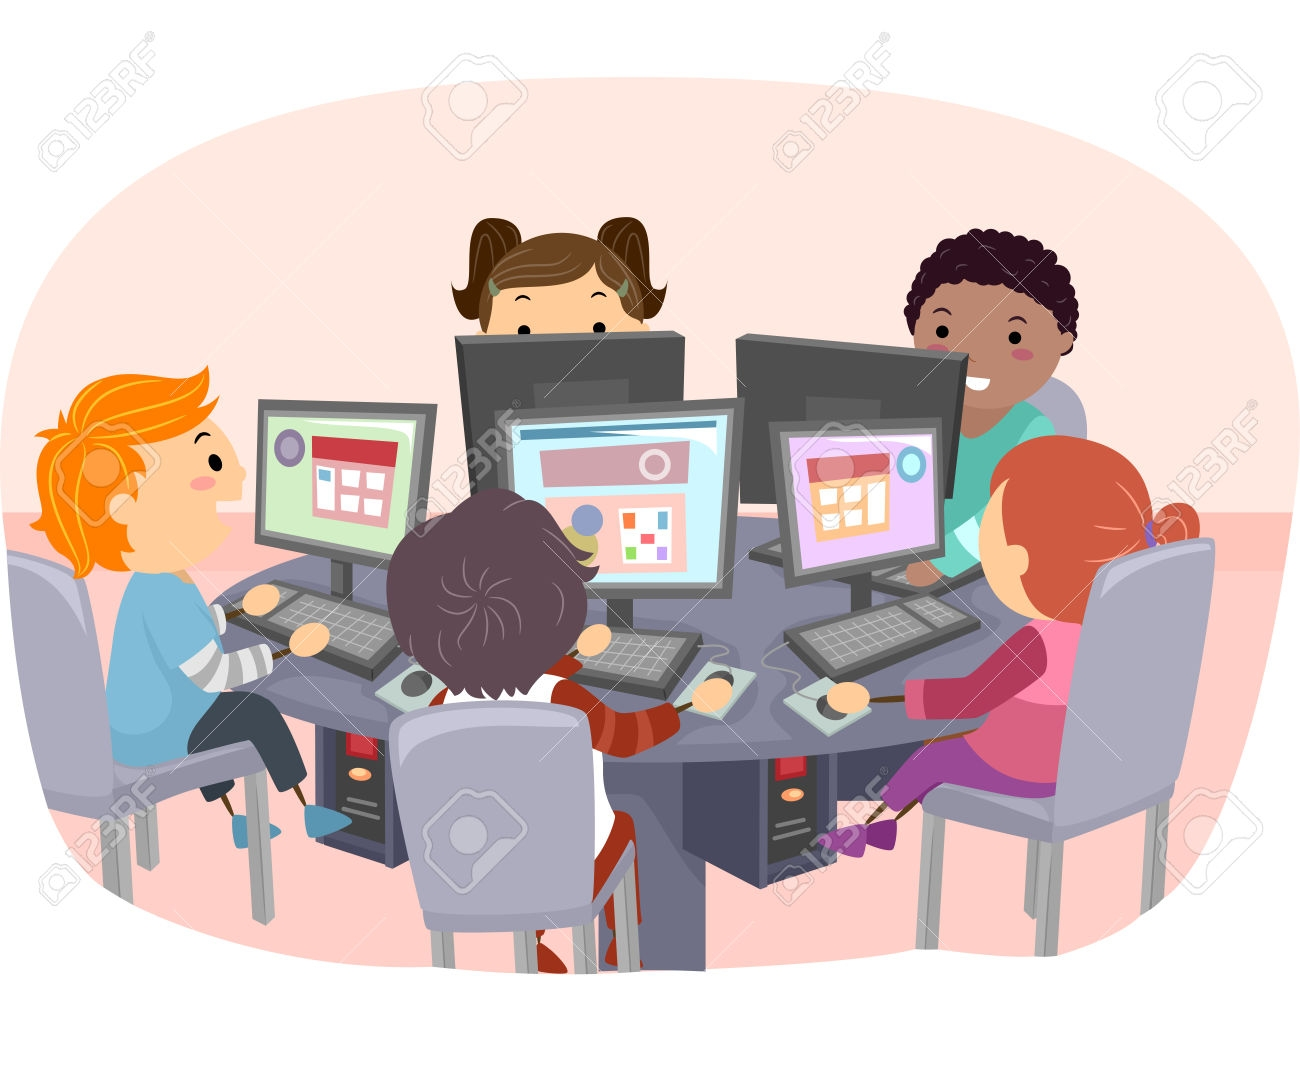 Technology clipart computer kid BBCpersian7 ClipartFest lab with collections